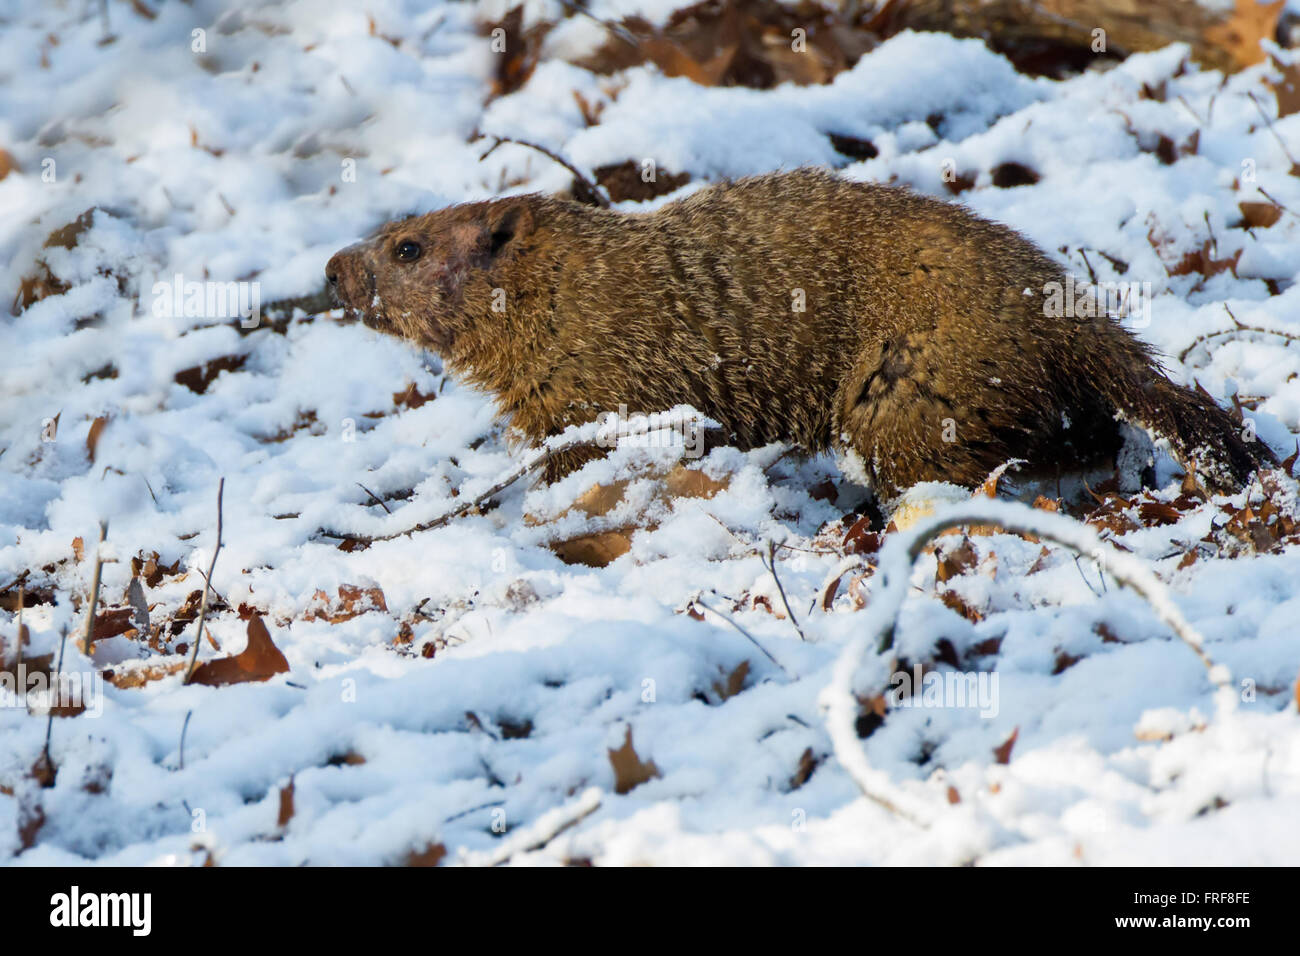 Woodchuck in the snow - Stock Image